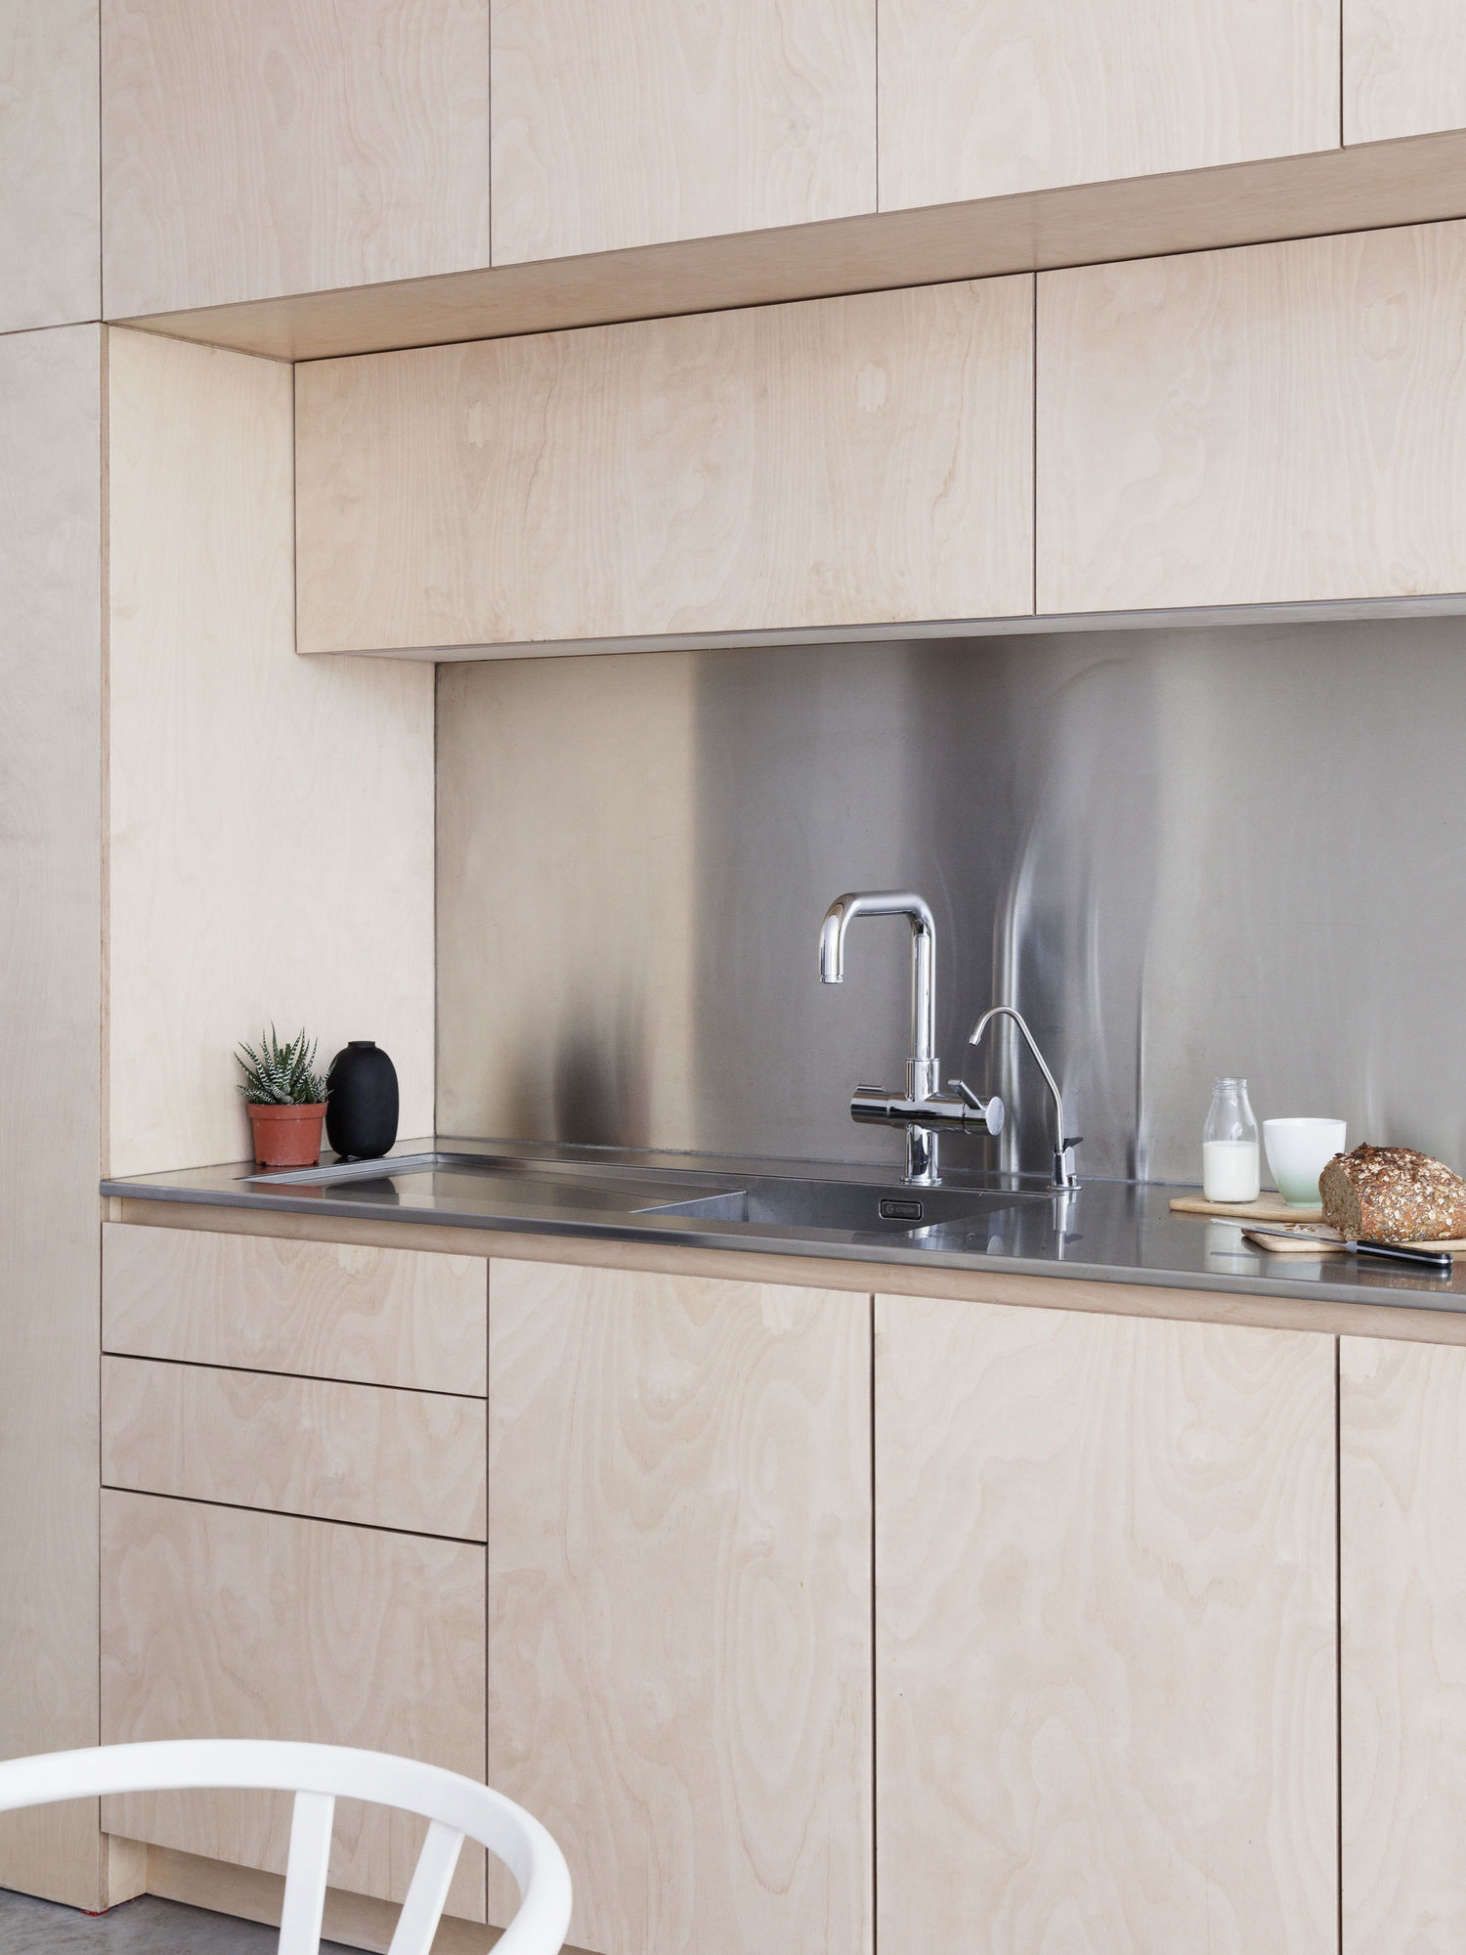 A Caple Cubit 0 stainless steel sink with drainer is set within the slim stainless steel counter. The faucet is Franke&#8